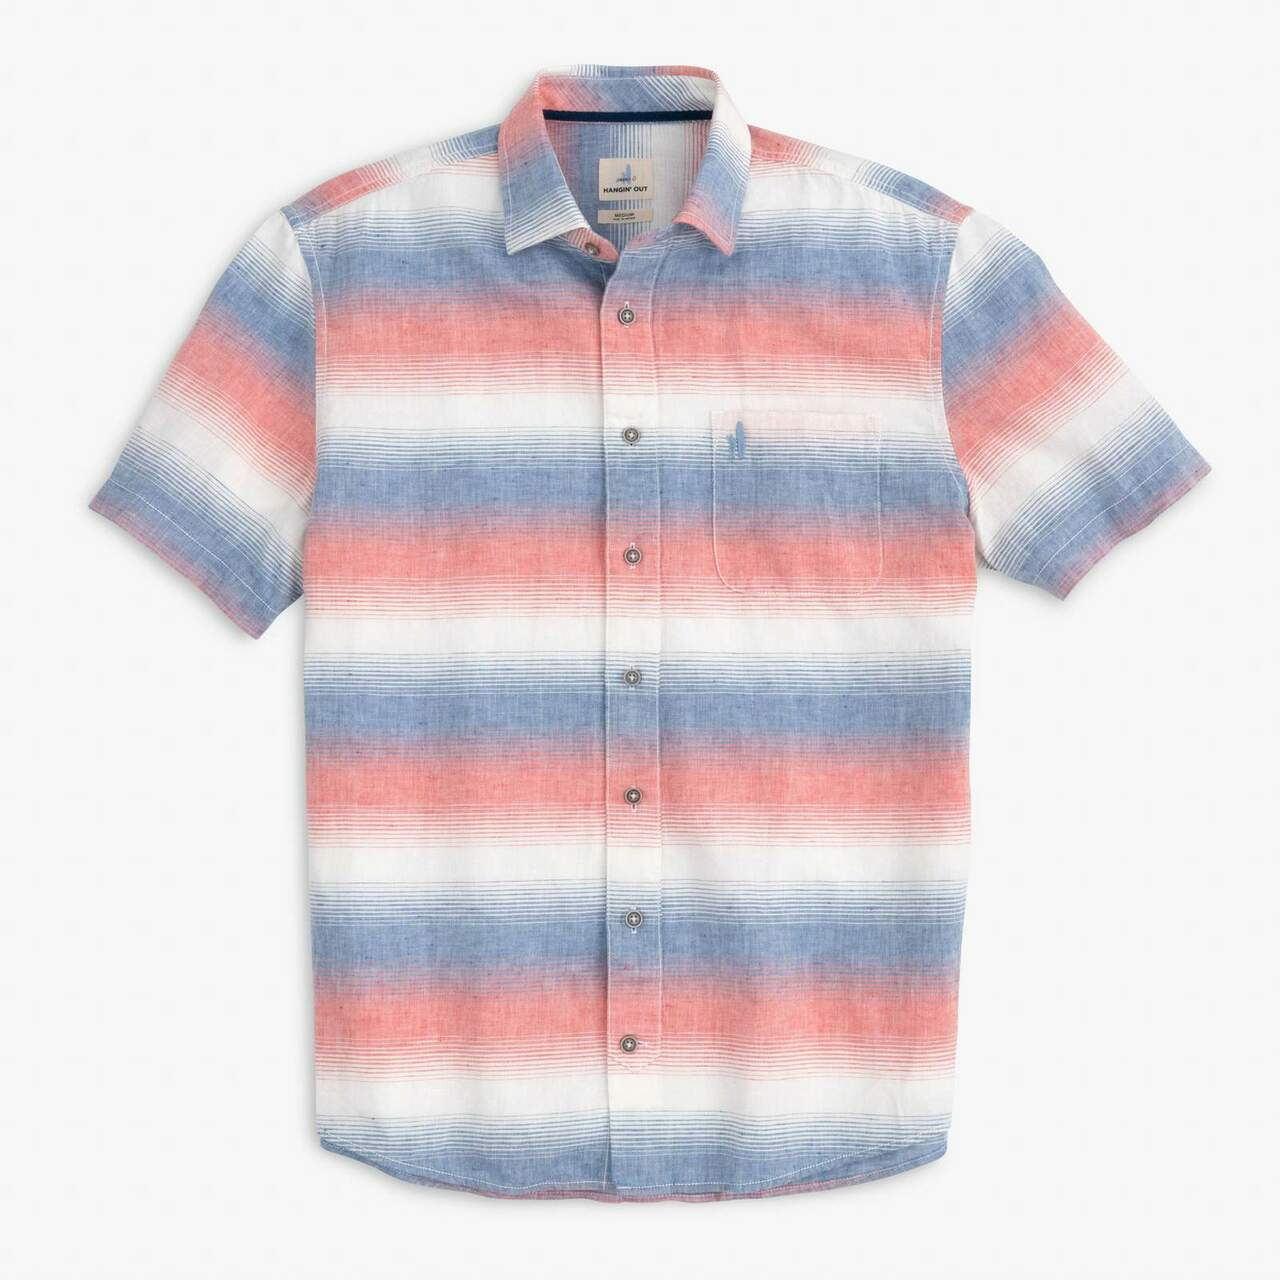 Johnnie-O - Donnie Hangin' Out Button Down Short-Sleeve Shirt